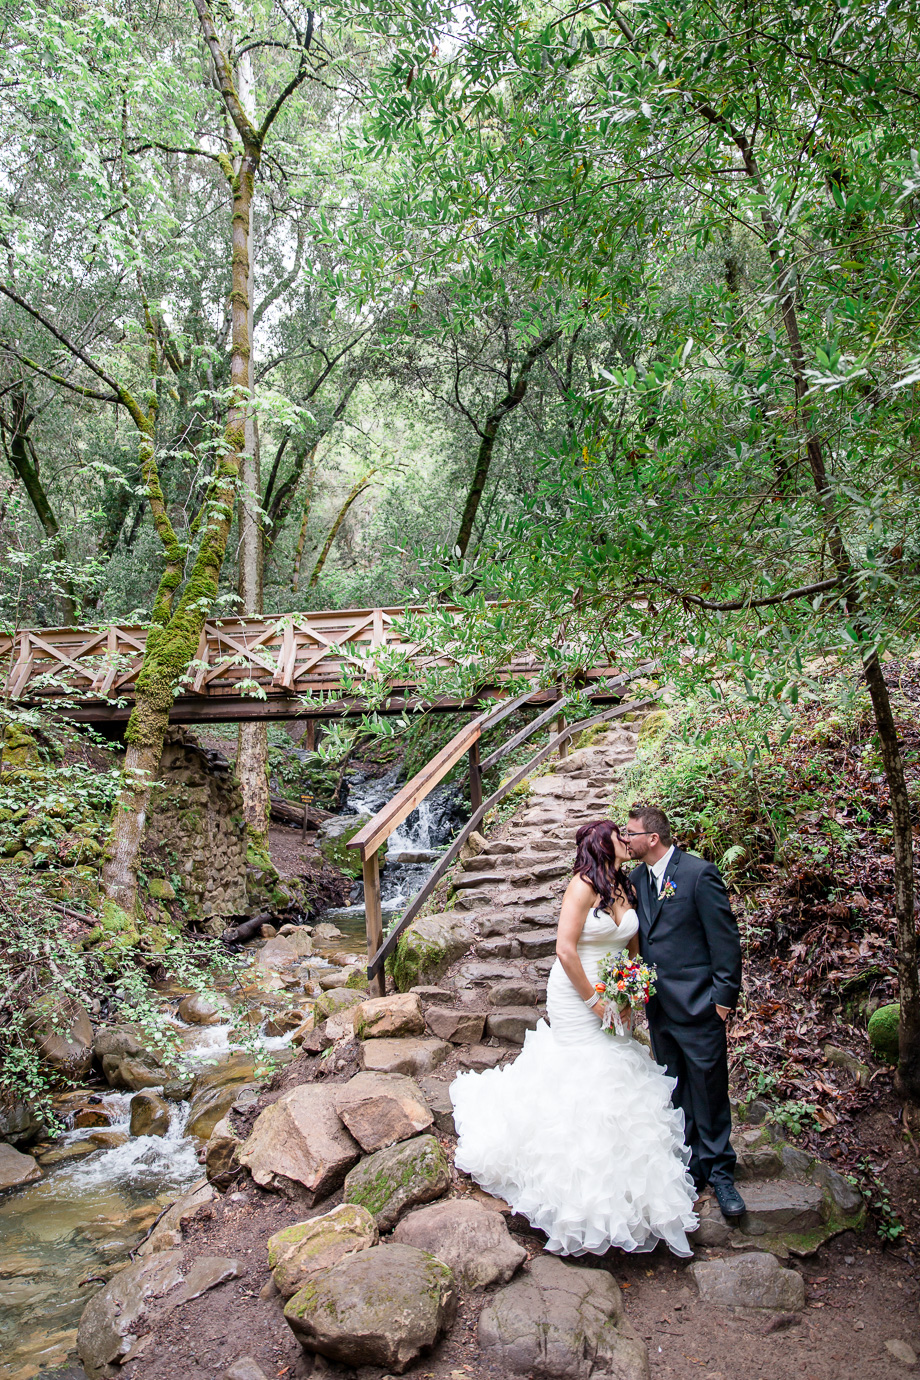 bride and groom wedding portrait by the waterfall in the woods at California Uvas Canyon County Park